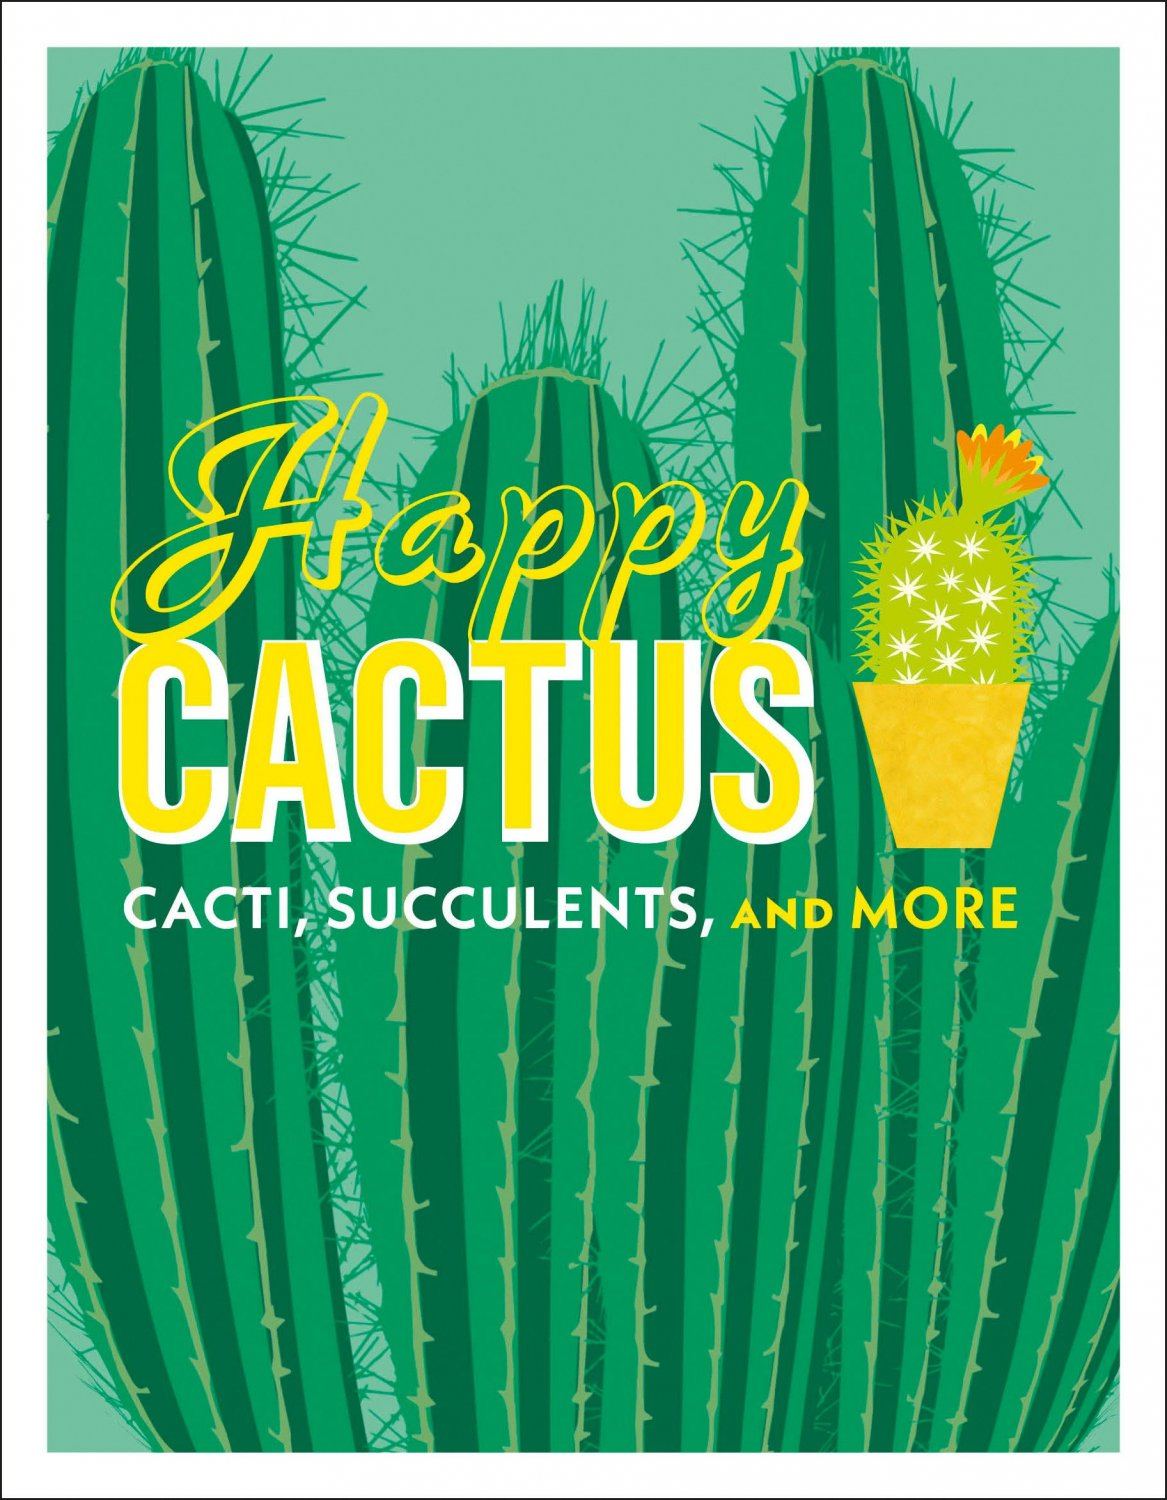 Happy Cactus: Cacti, Succulents, and More Hardcover